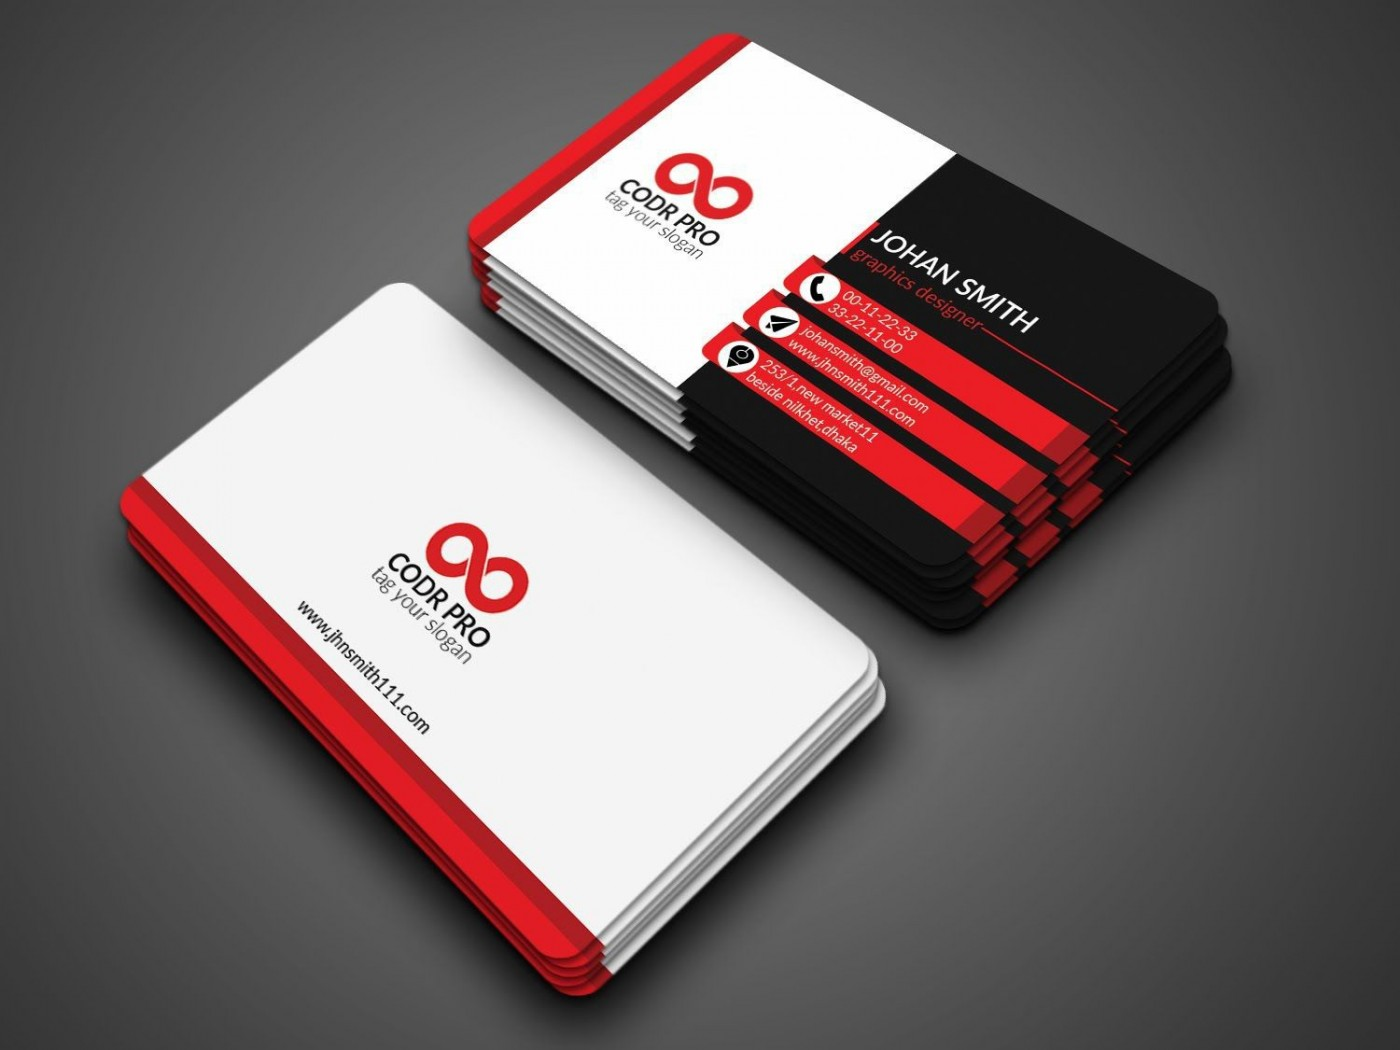 003 Fantastic Psd Busines Card Template Photo  With Bleed And Crop Mark Vistaprint Free1400